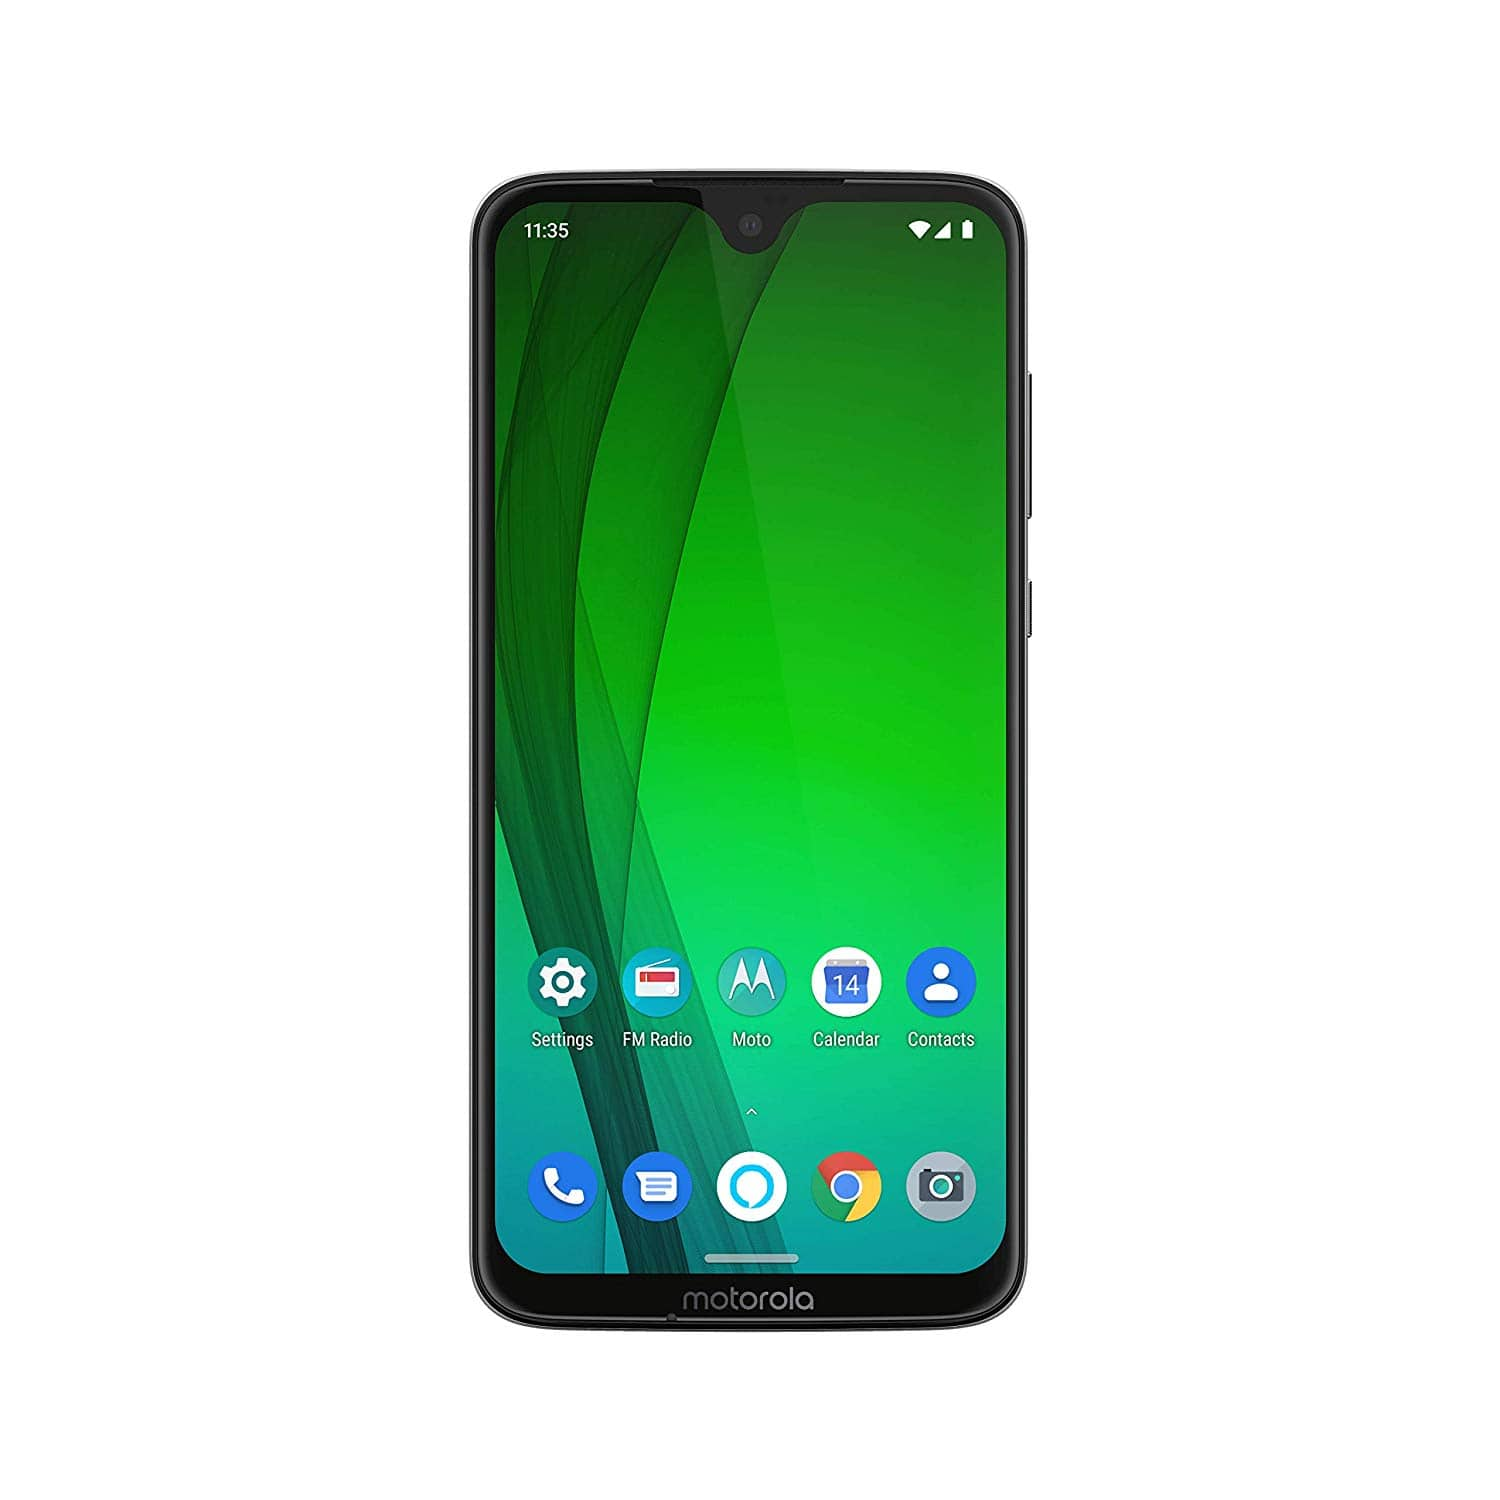 Moto G7 with Alexa Hands-Free – Unlocked – 64 GB – Clear White or Black $269.99